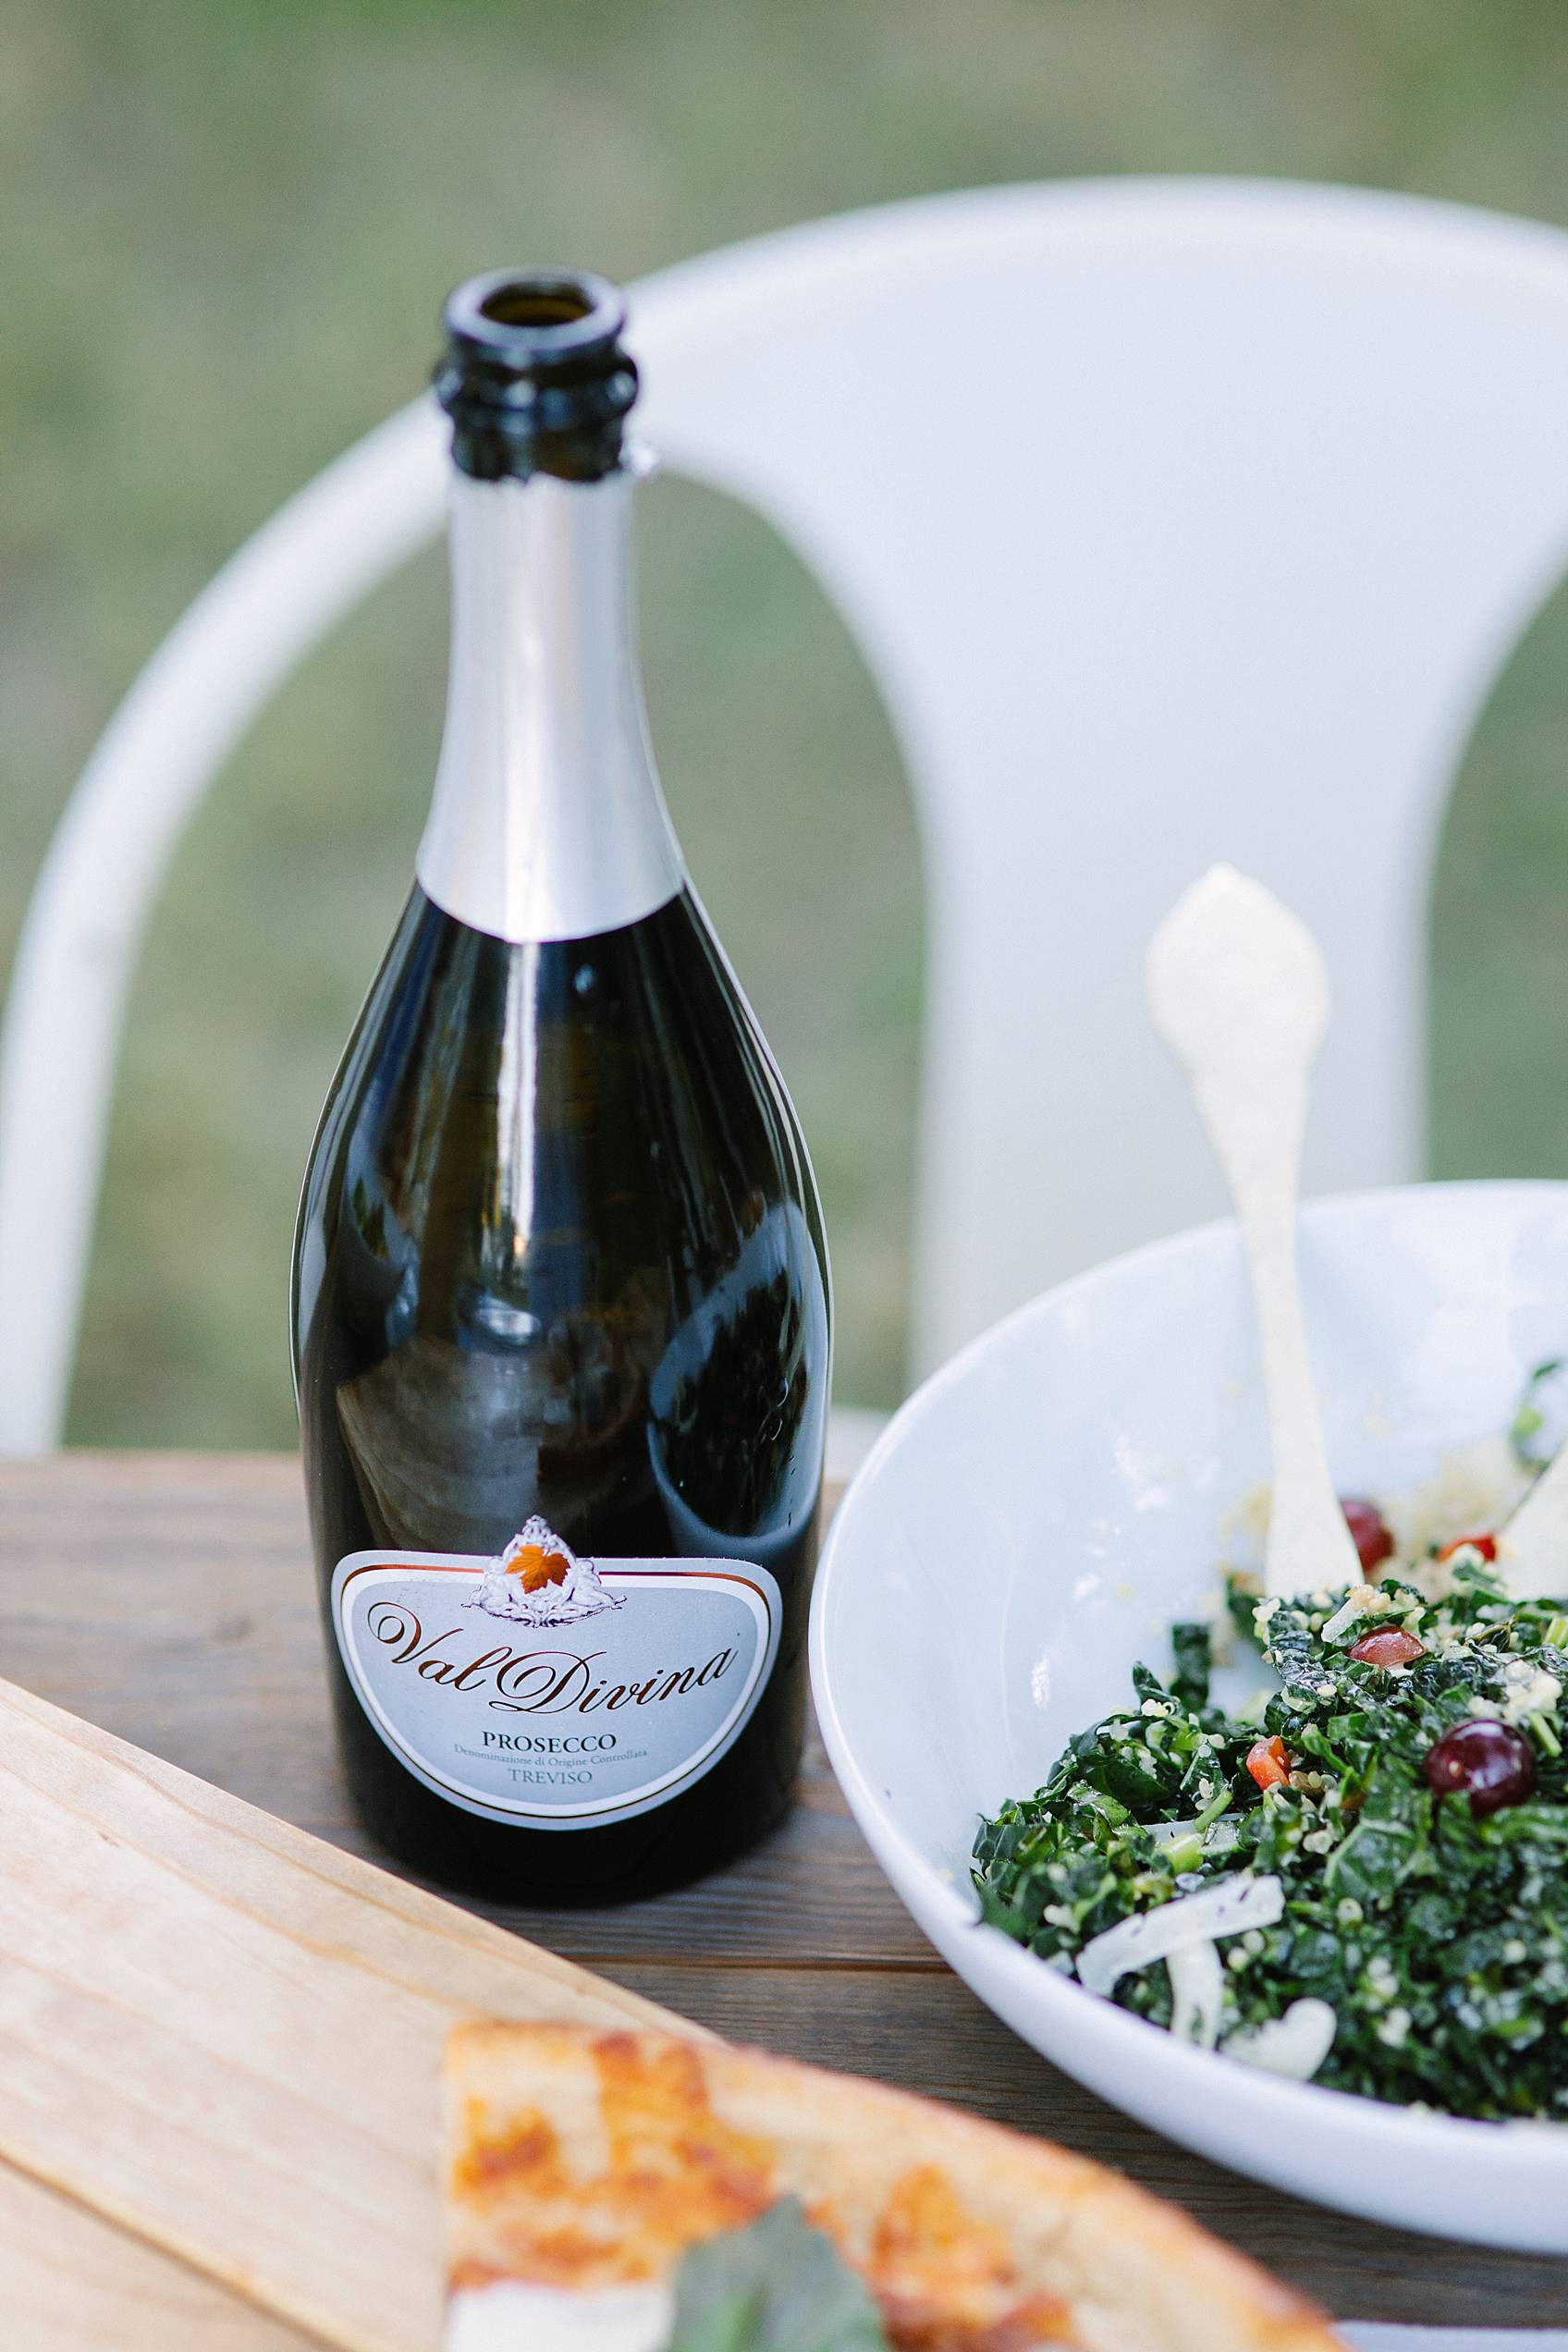 Shredded kale salad with Val Divina Prosecco Sparkling Wine from Veneto; Italy